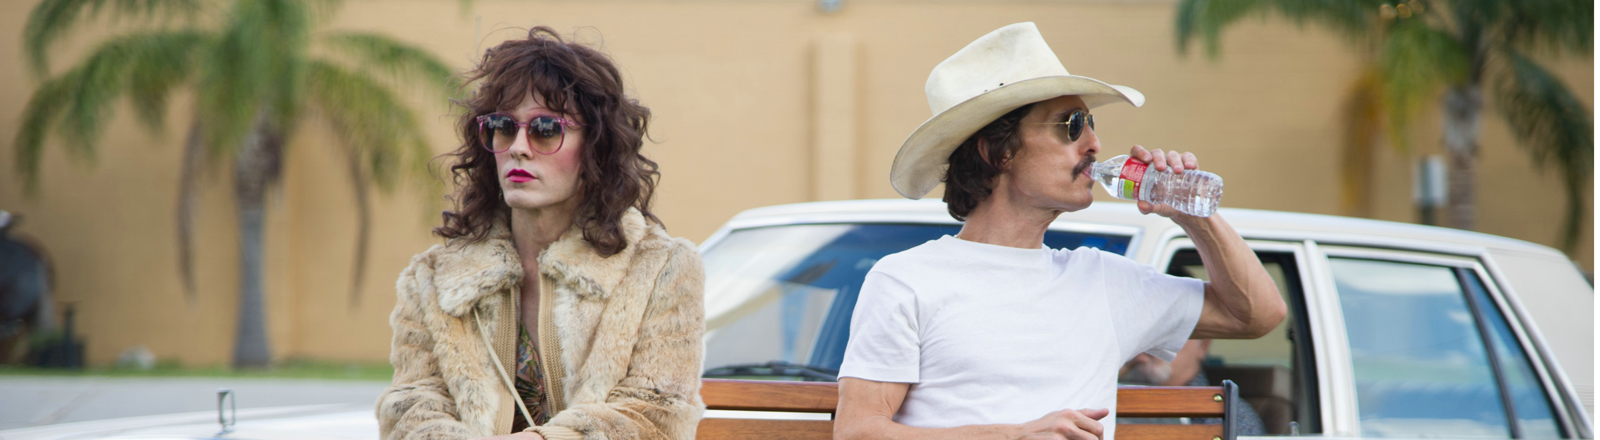 "Die Schauspieler Jared Leto (l) als Rayon und Matthew McConaughey als Ron Woodroof in einer undatierten Filmszene des Kinofilms ""Dallas Buyers Club""."